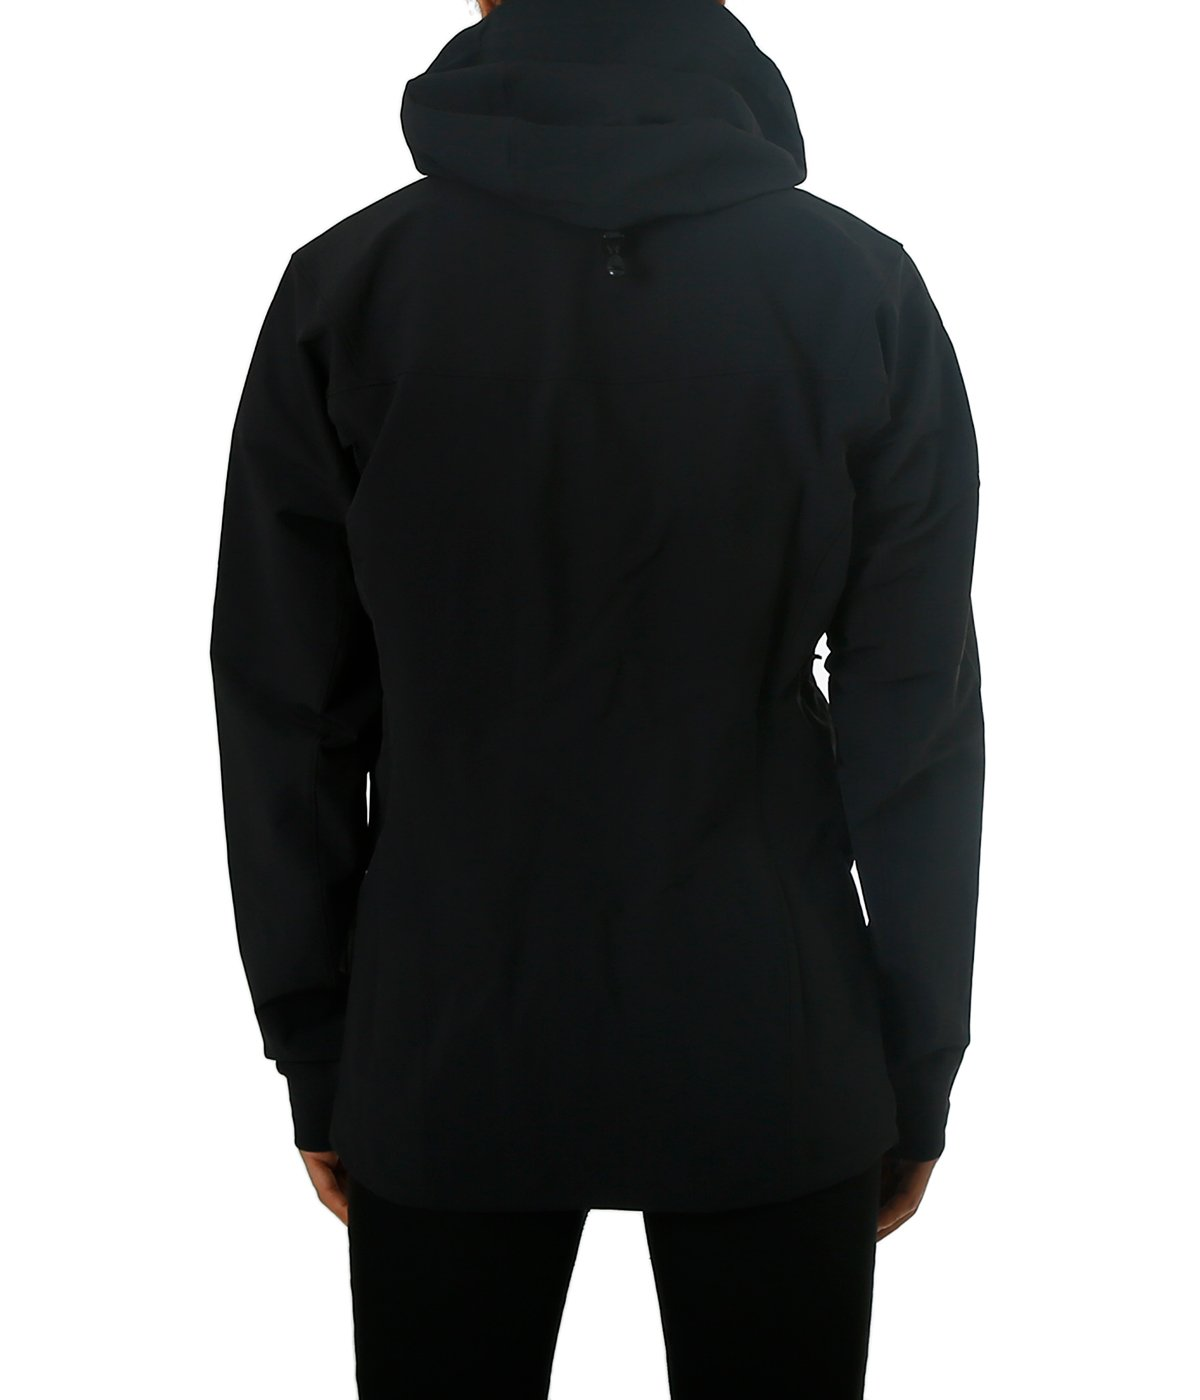 Gamma LT Hoody Men's (REGULAR FIT)